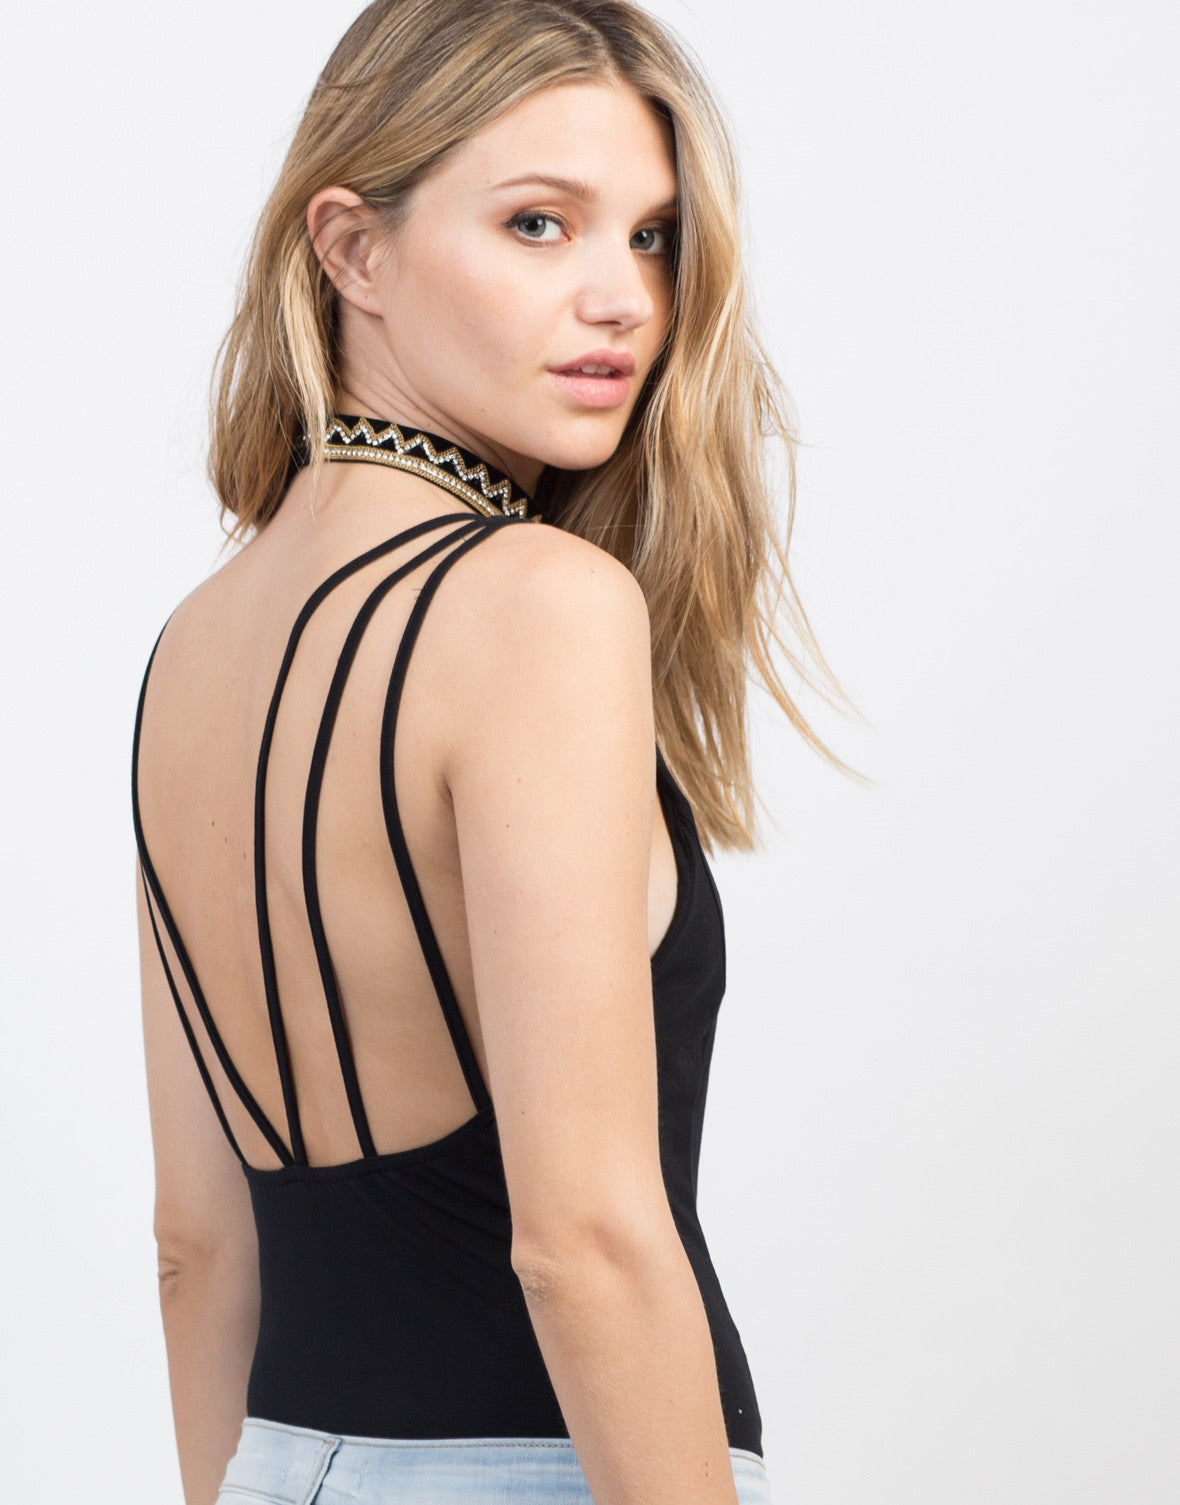 Detail of V-Neck Strappy Bodysuit